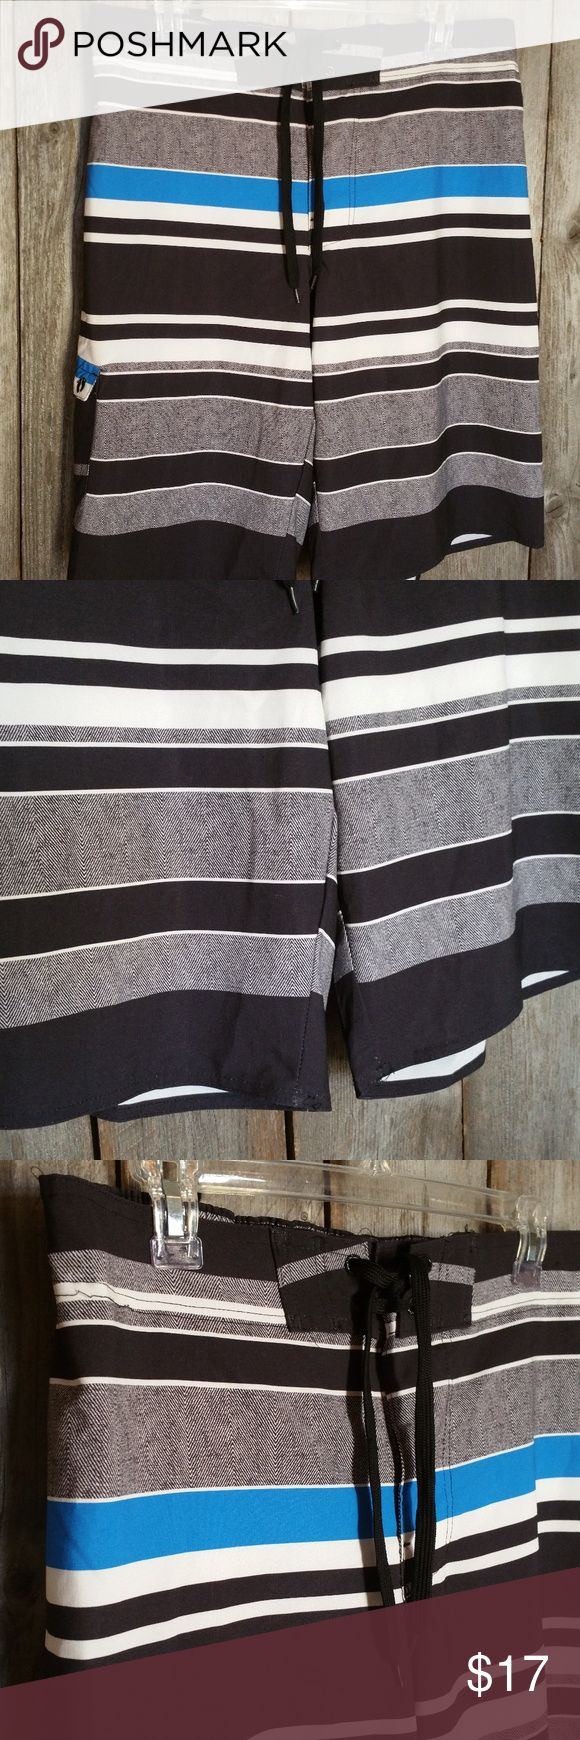 Hang Ten Swim Trunks L Black Blue White Striped Hang Ten Swim Trunks Men's L Black Blue White Striped Polyester spandex Lined  Gently used Cargo pocket on leg Elastic in back of waist Approx waist 34-38, inseam 12 Hang Ten Swim Swim Trunks